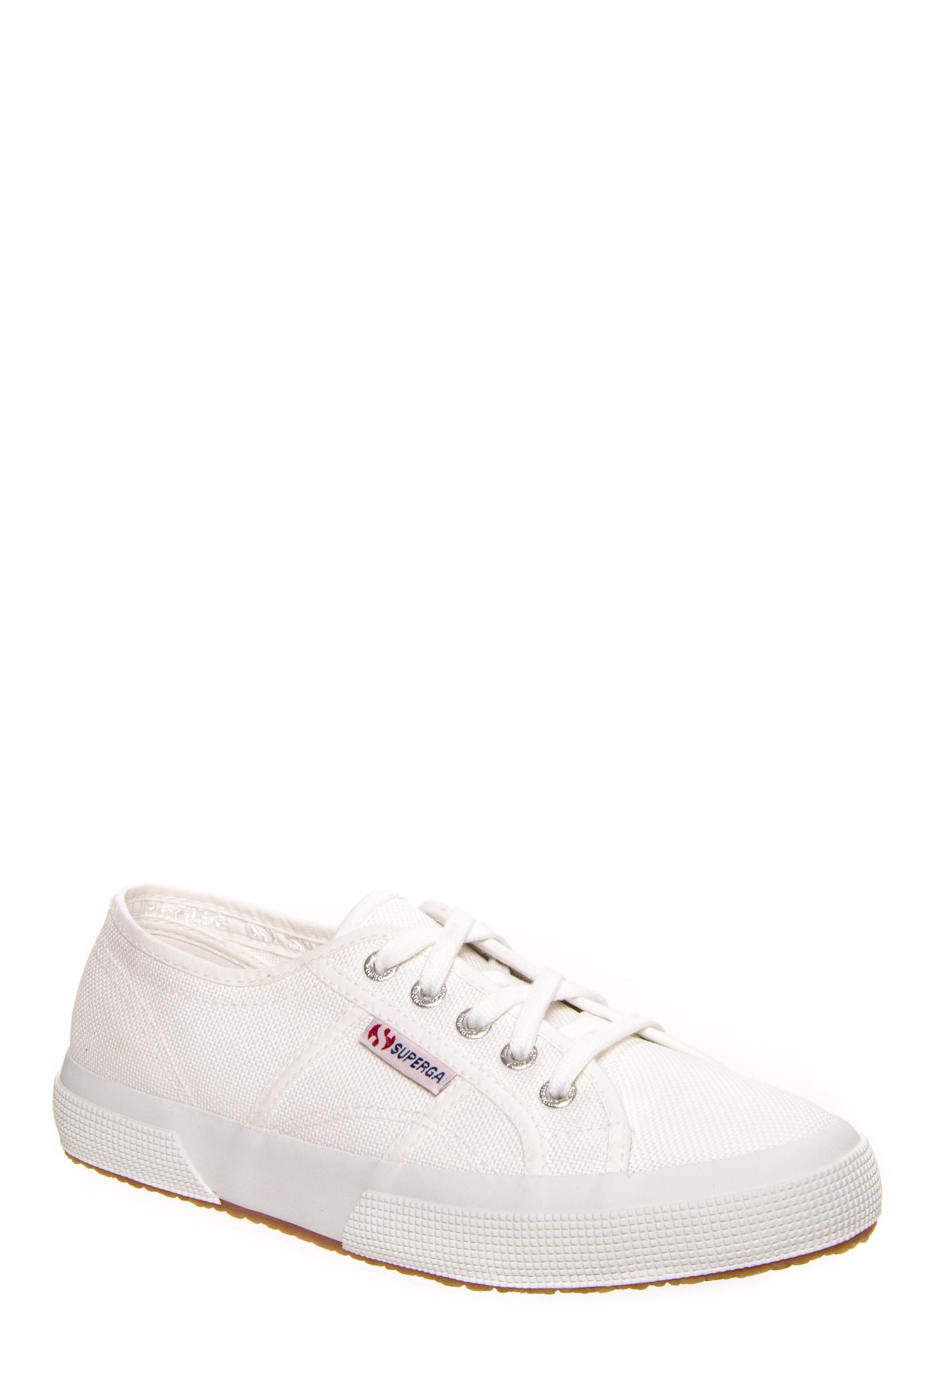 SUPERGA 2750 Cotu Classic Low Top Sneakers - White